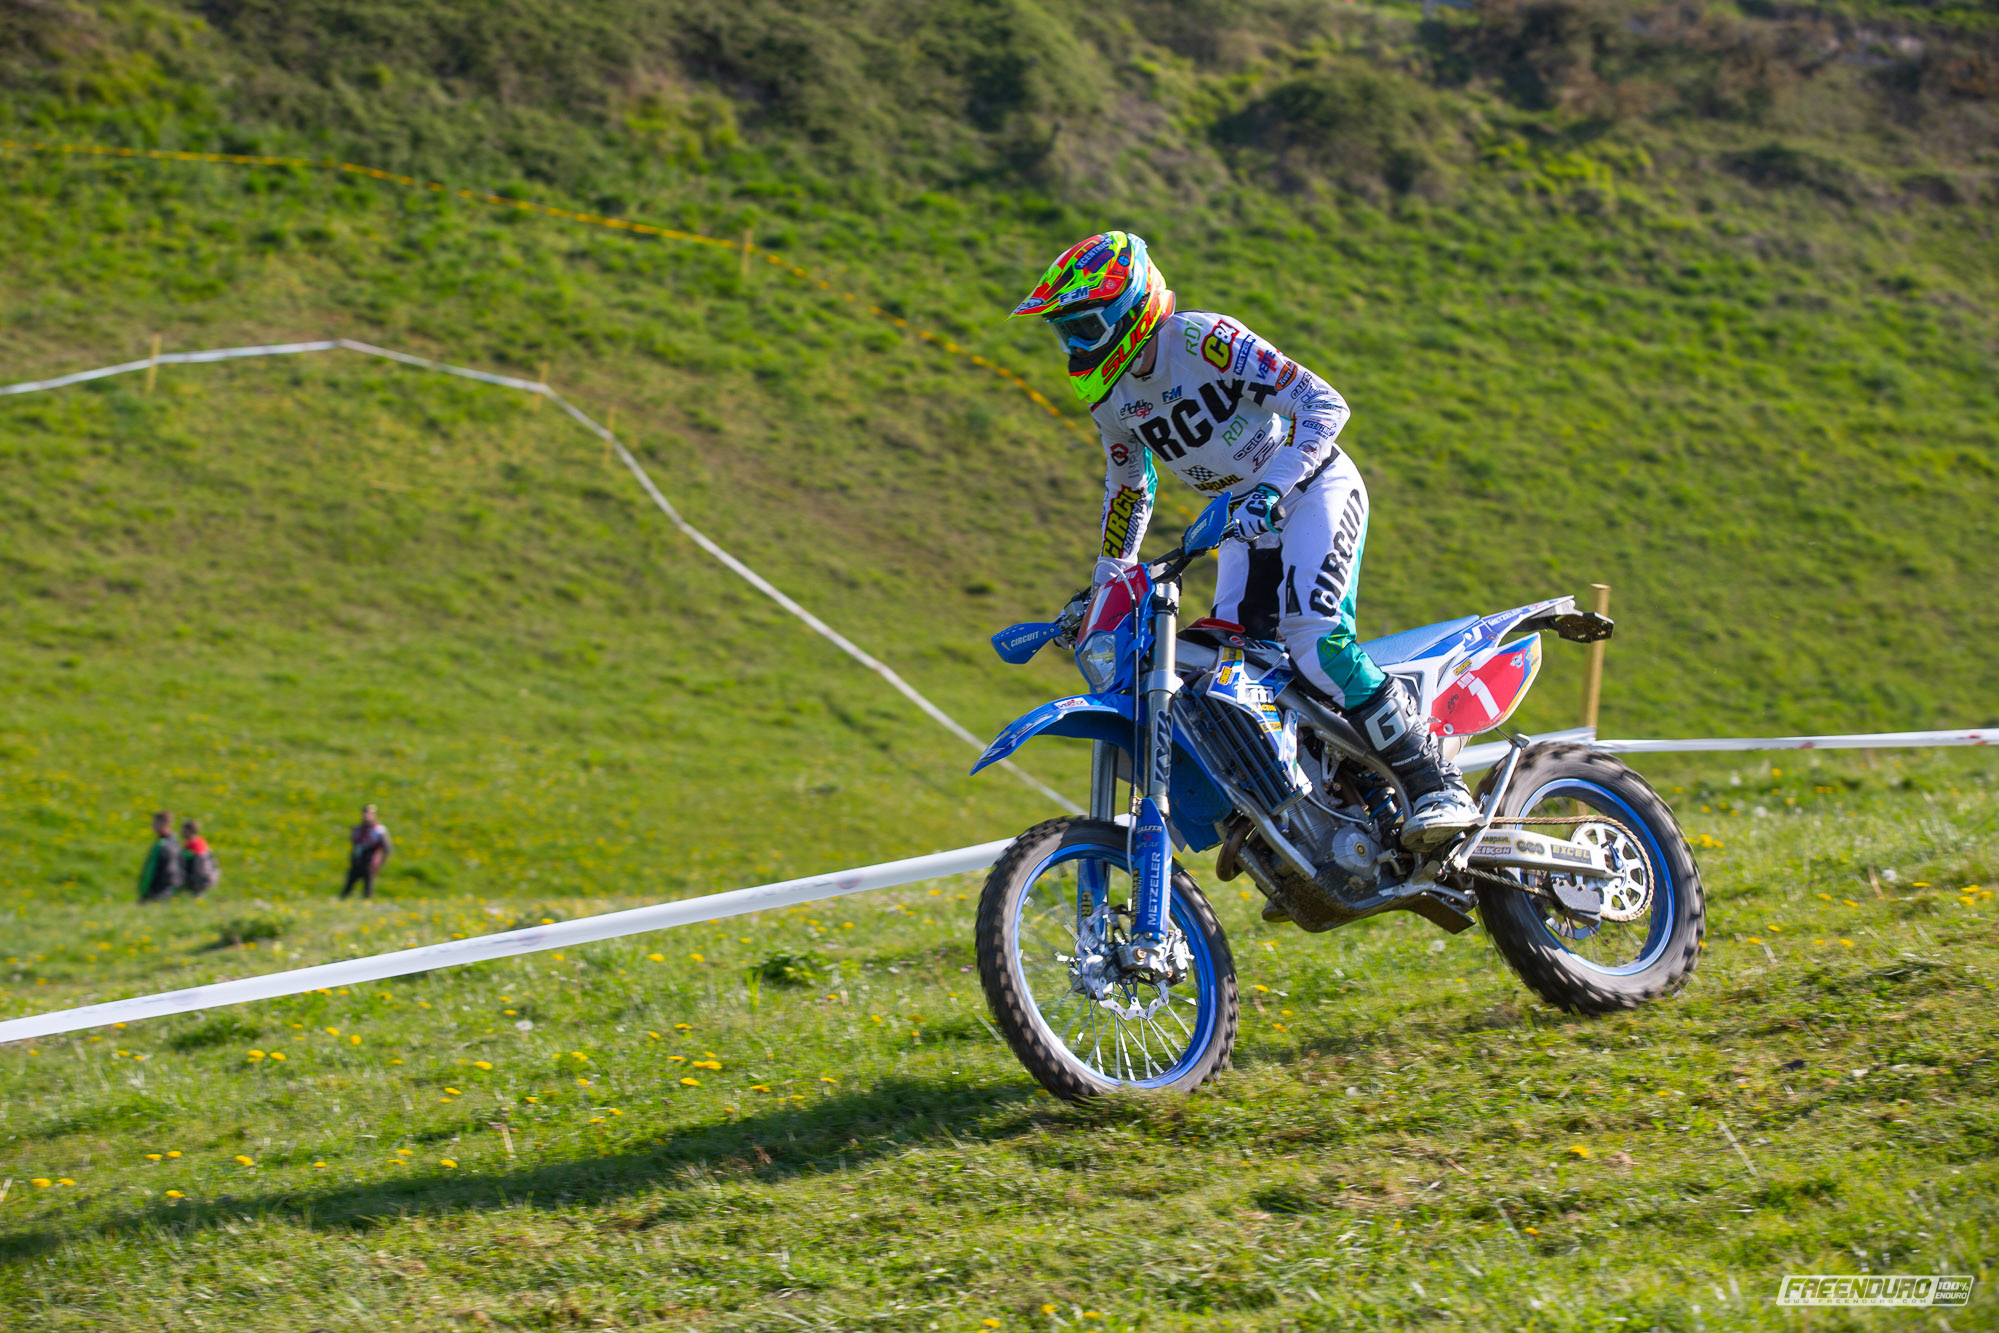 loci Larrieu pilote enduro 300 TM Racing 2019